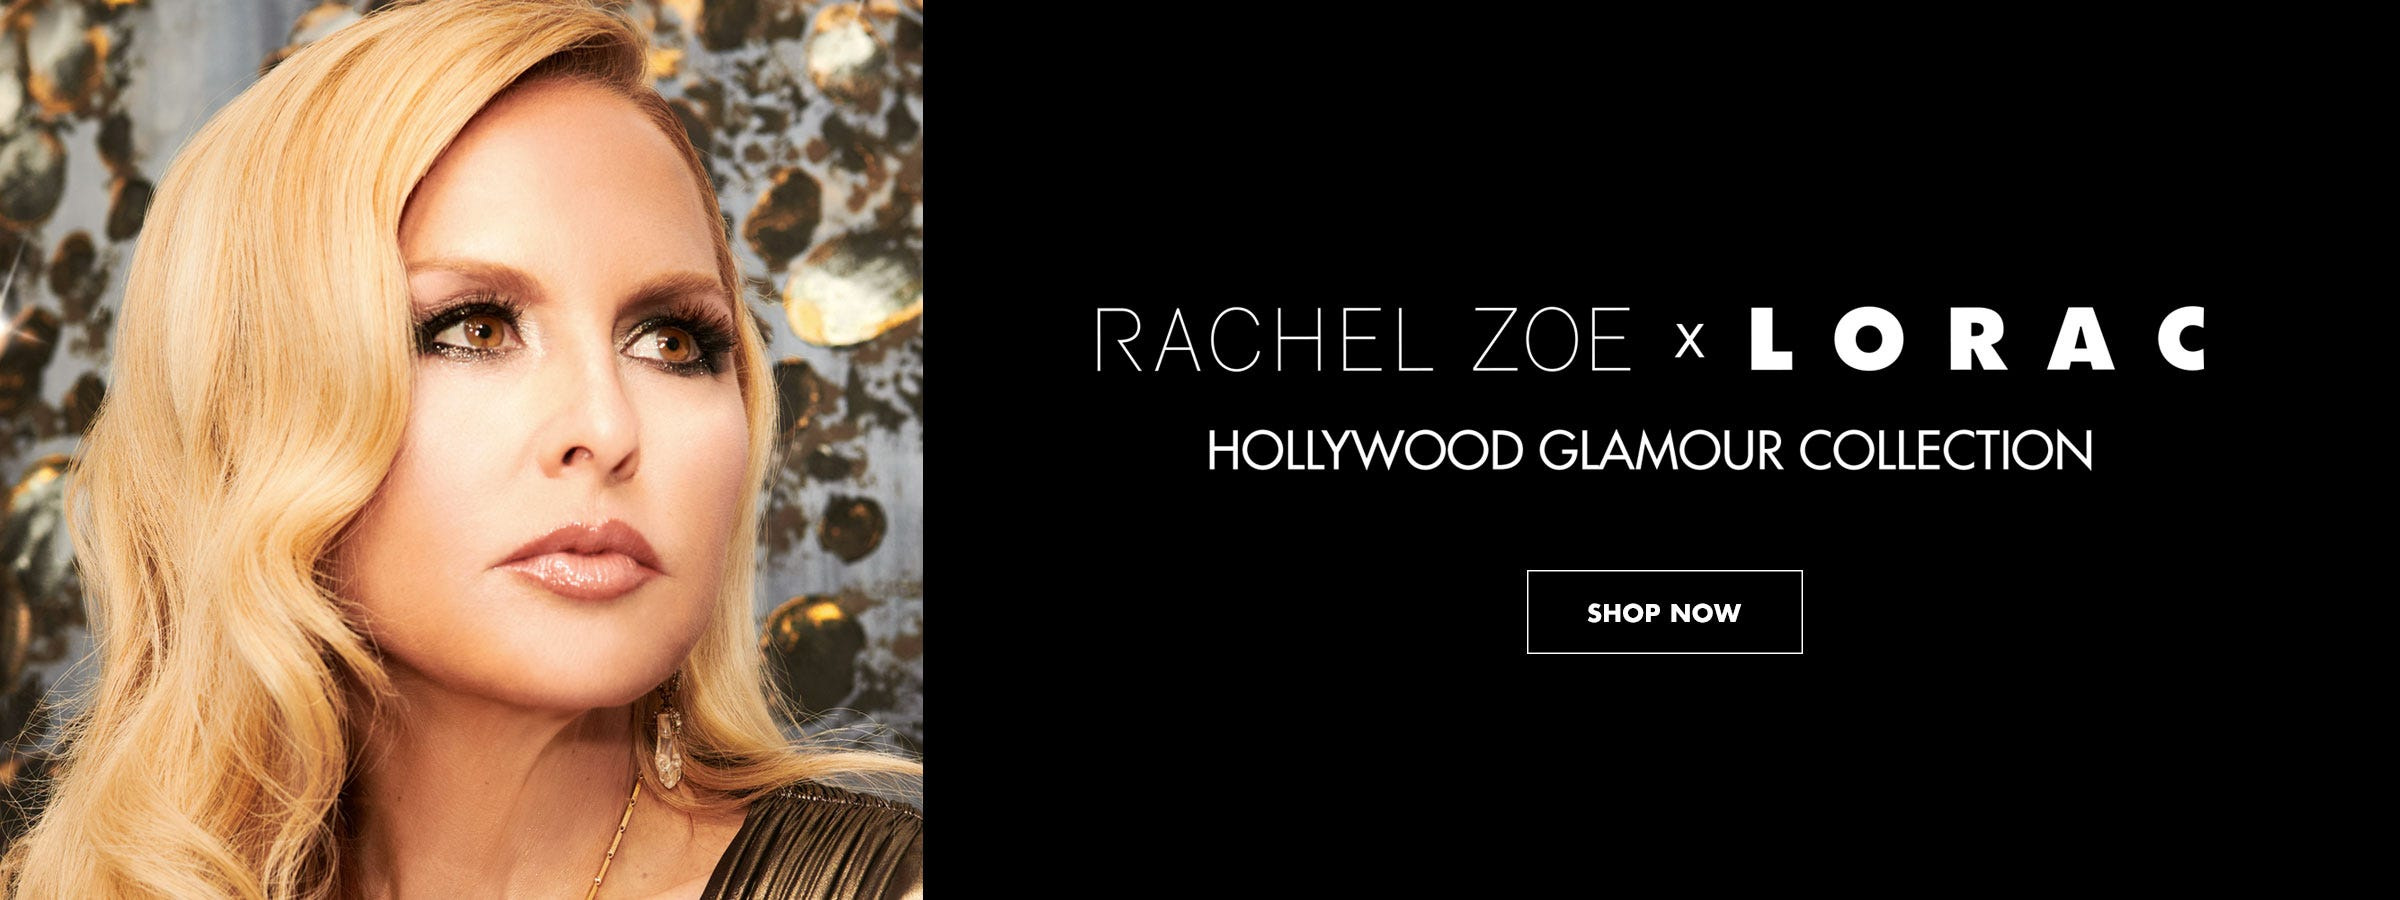 Rachel Zoe X LORAC Now Available | Shop Now